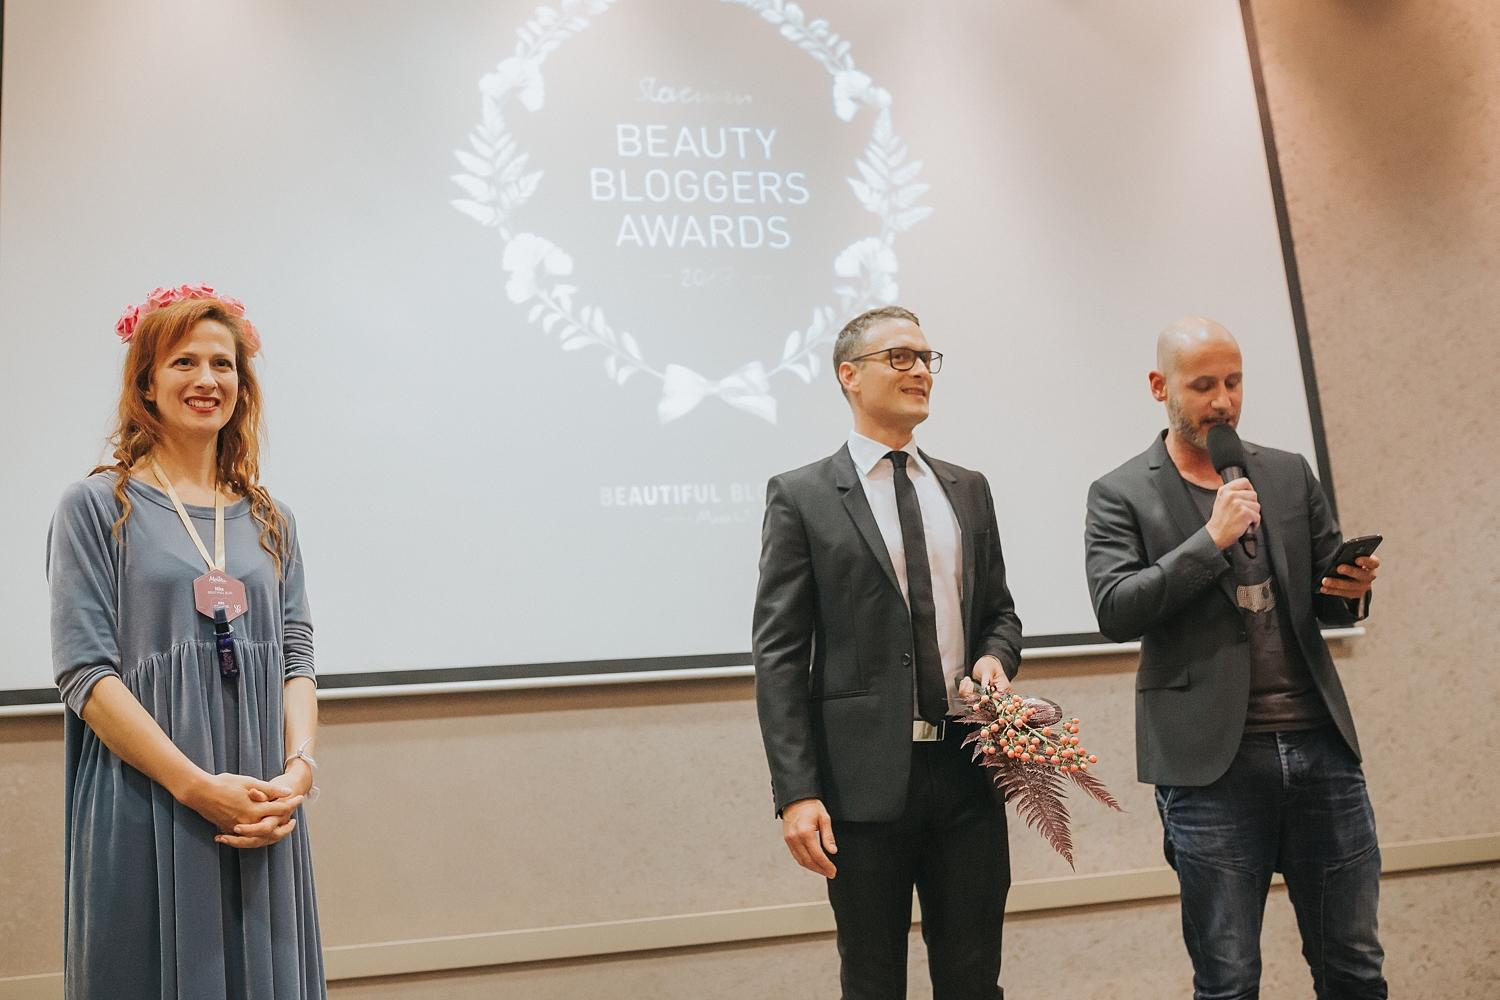 Nagrade lepotnih blogerk Beauti Bloggers Awards 2017 Beautyfullblog Starskin Olaplex